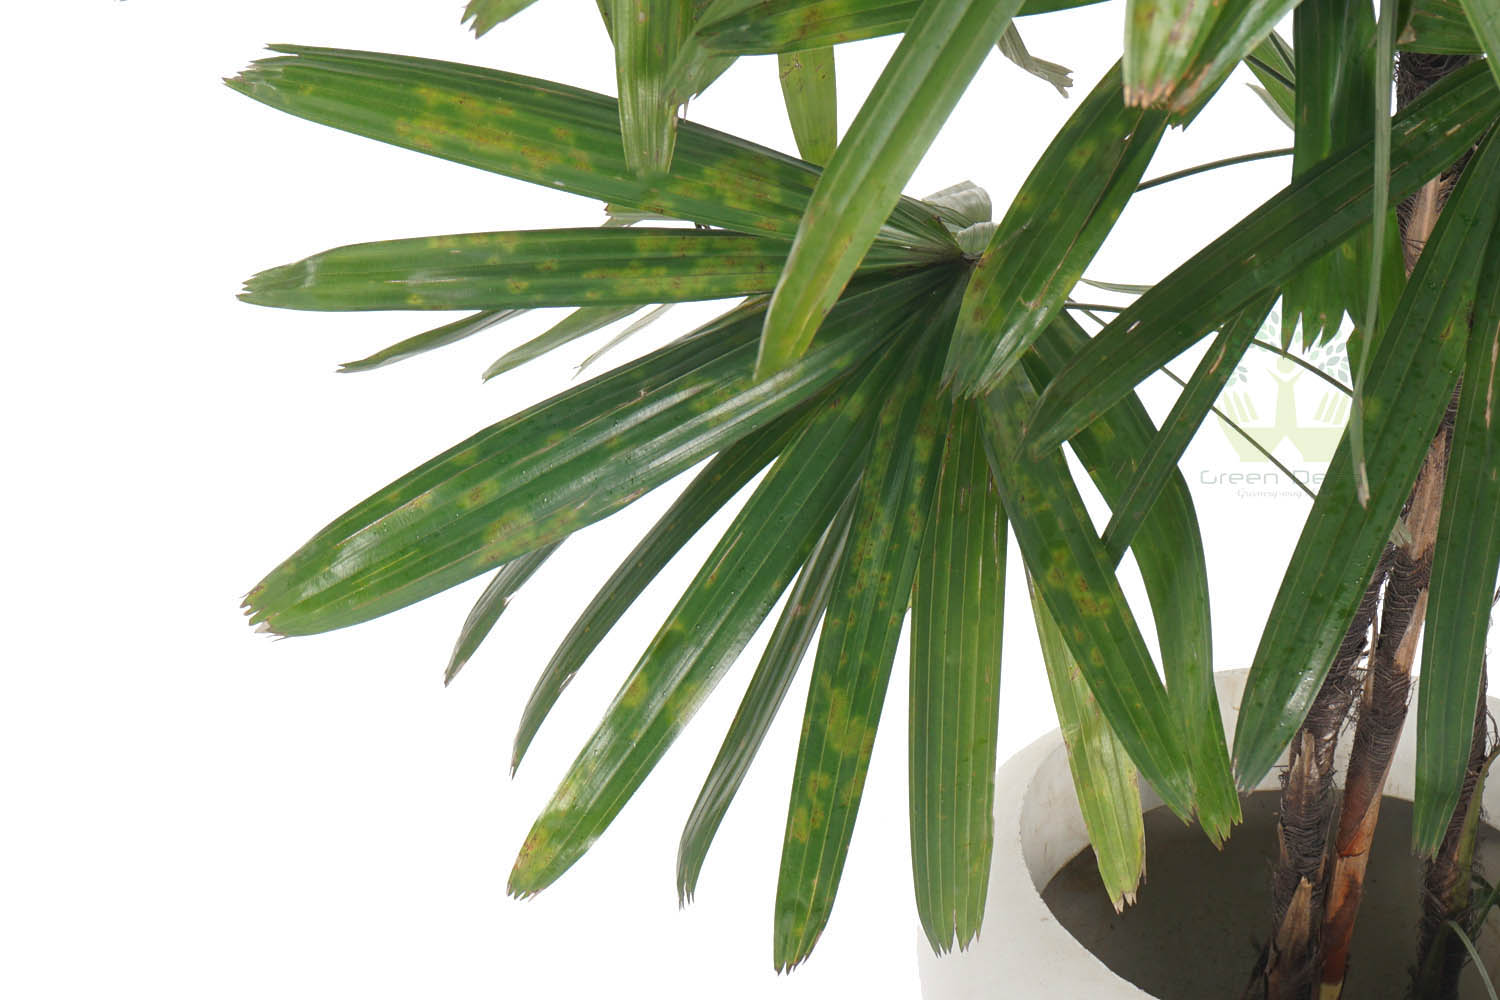 Buy Broadleaf Lady Palm Plants Leaves View , White Pots and seeds in Delhi NCR by the best online nursery shop Greendecor.